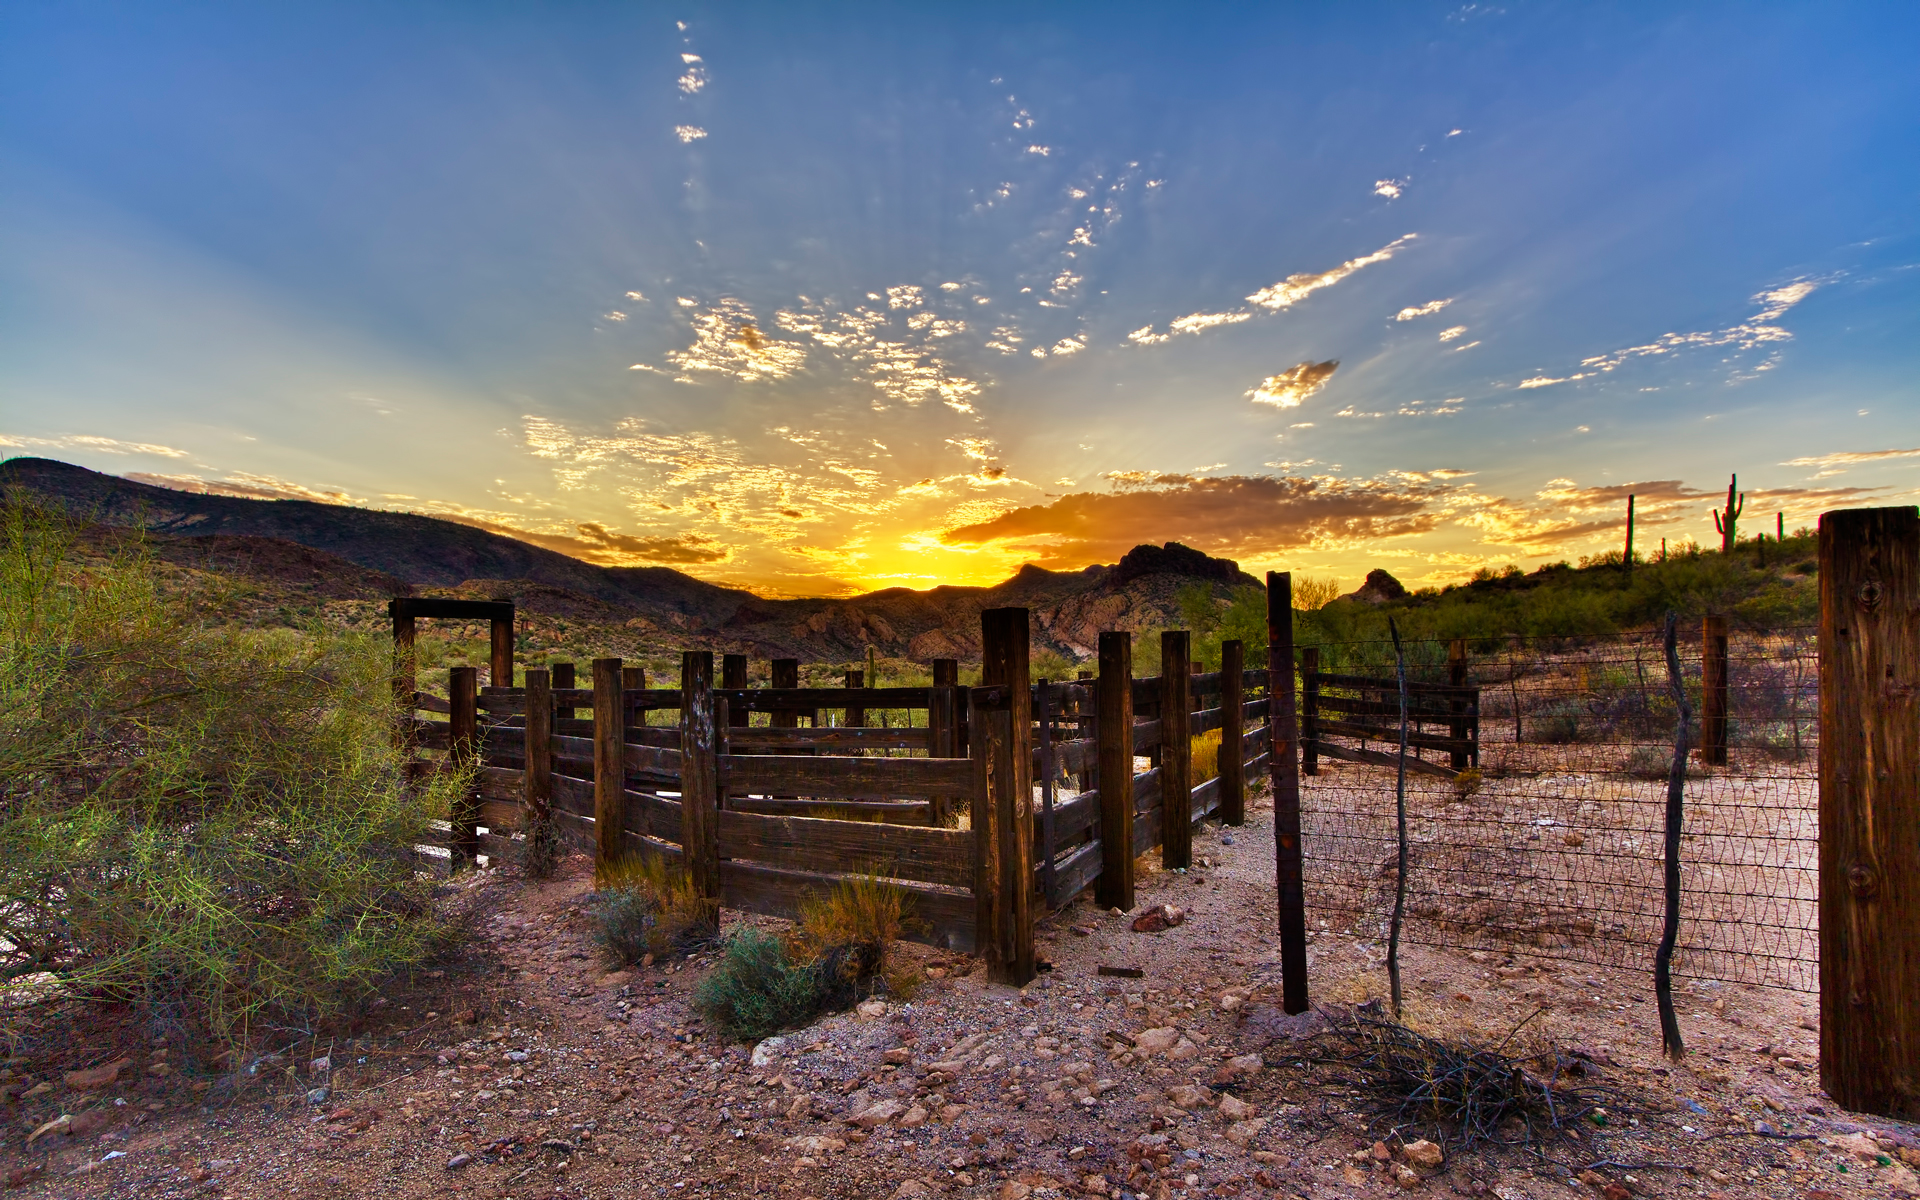 Man Made - Fence  - Landscape Wallpaper